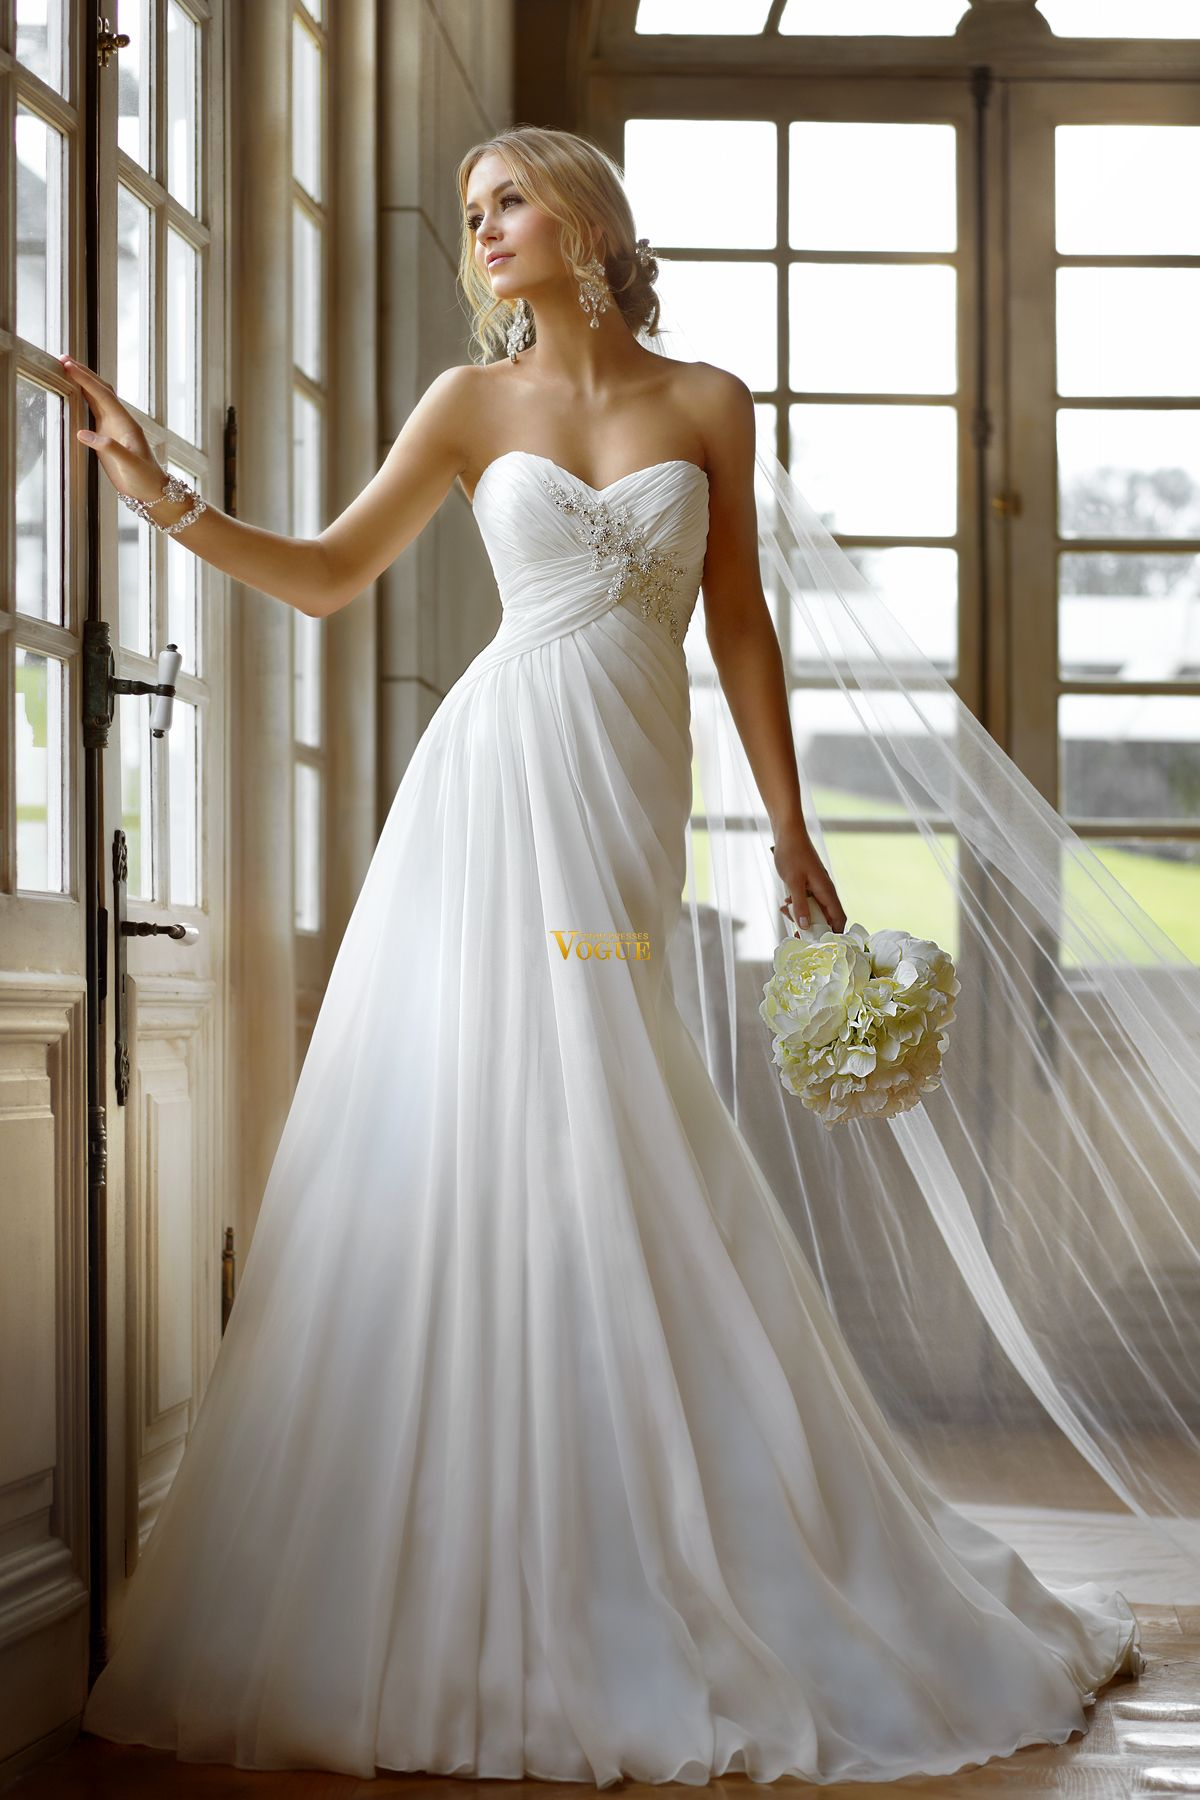 2013 Wedding Dresses A Line Wedding Dresses Beach Wedding Dresses Vogue Wedding  Dresses USD 199.99 PAXZJ7XH. Style Wedding 2015 ... eb5fa8433e45